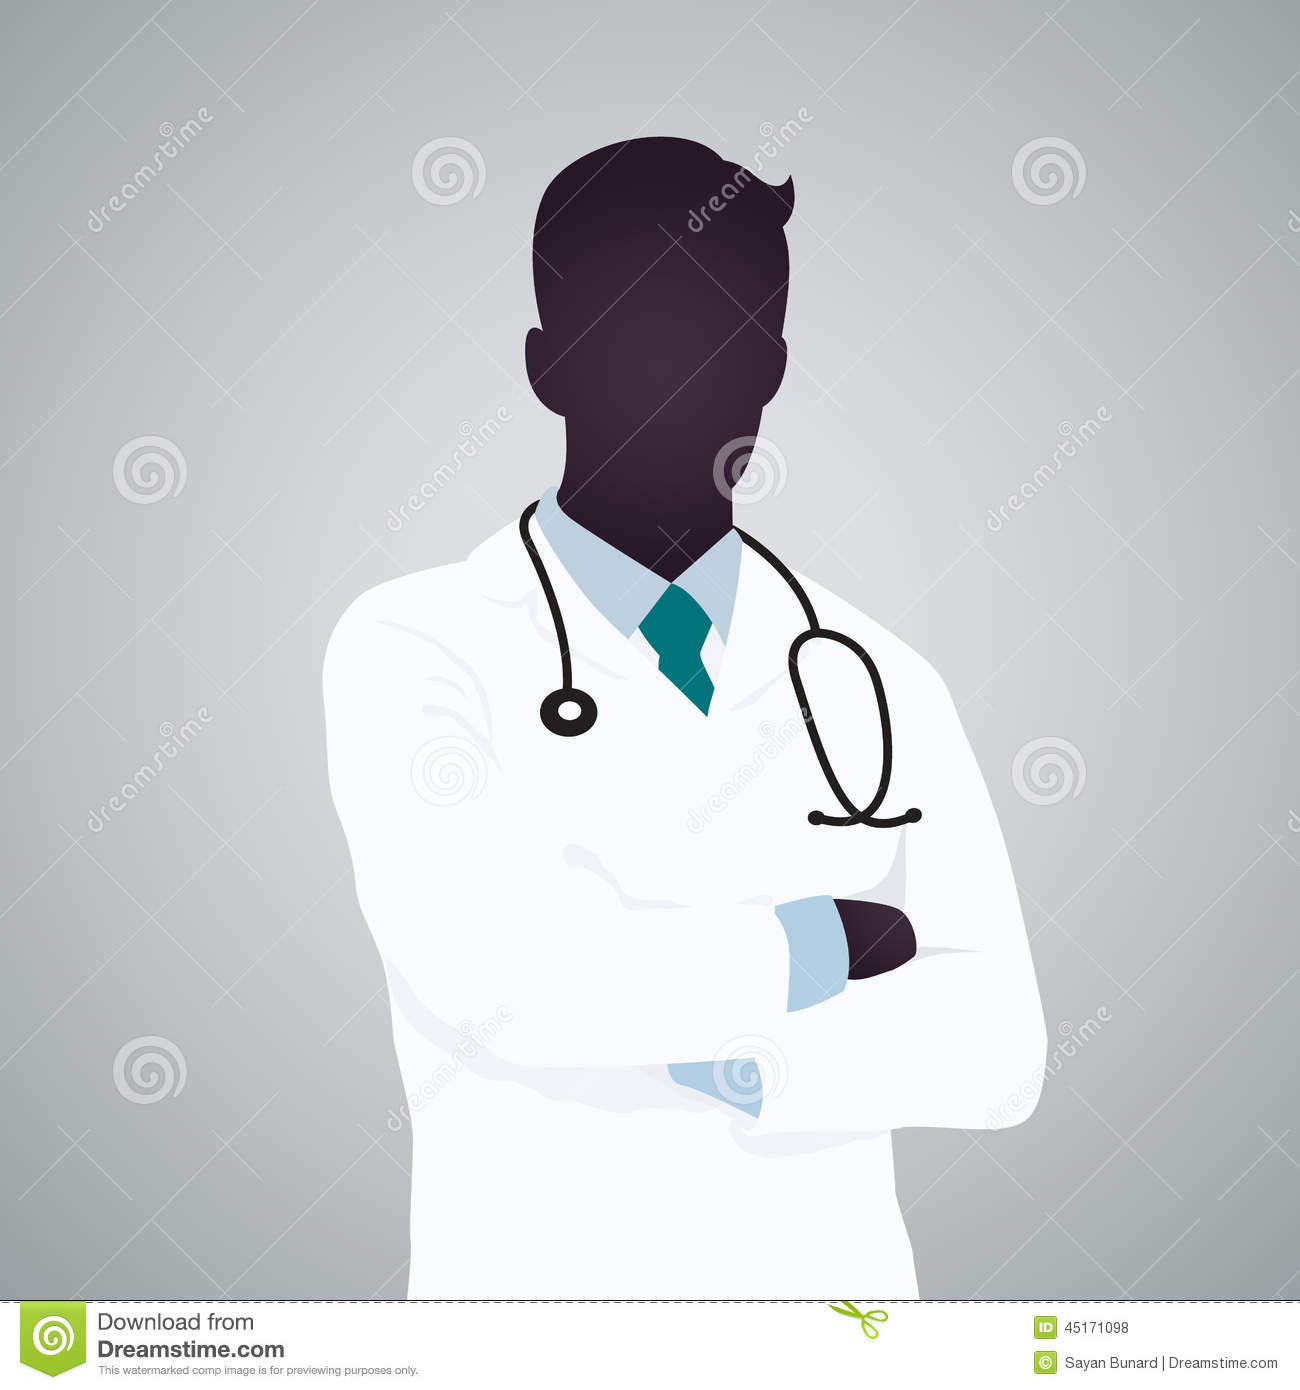 Medical doctor icon vector illustration eps 10.